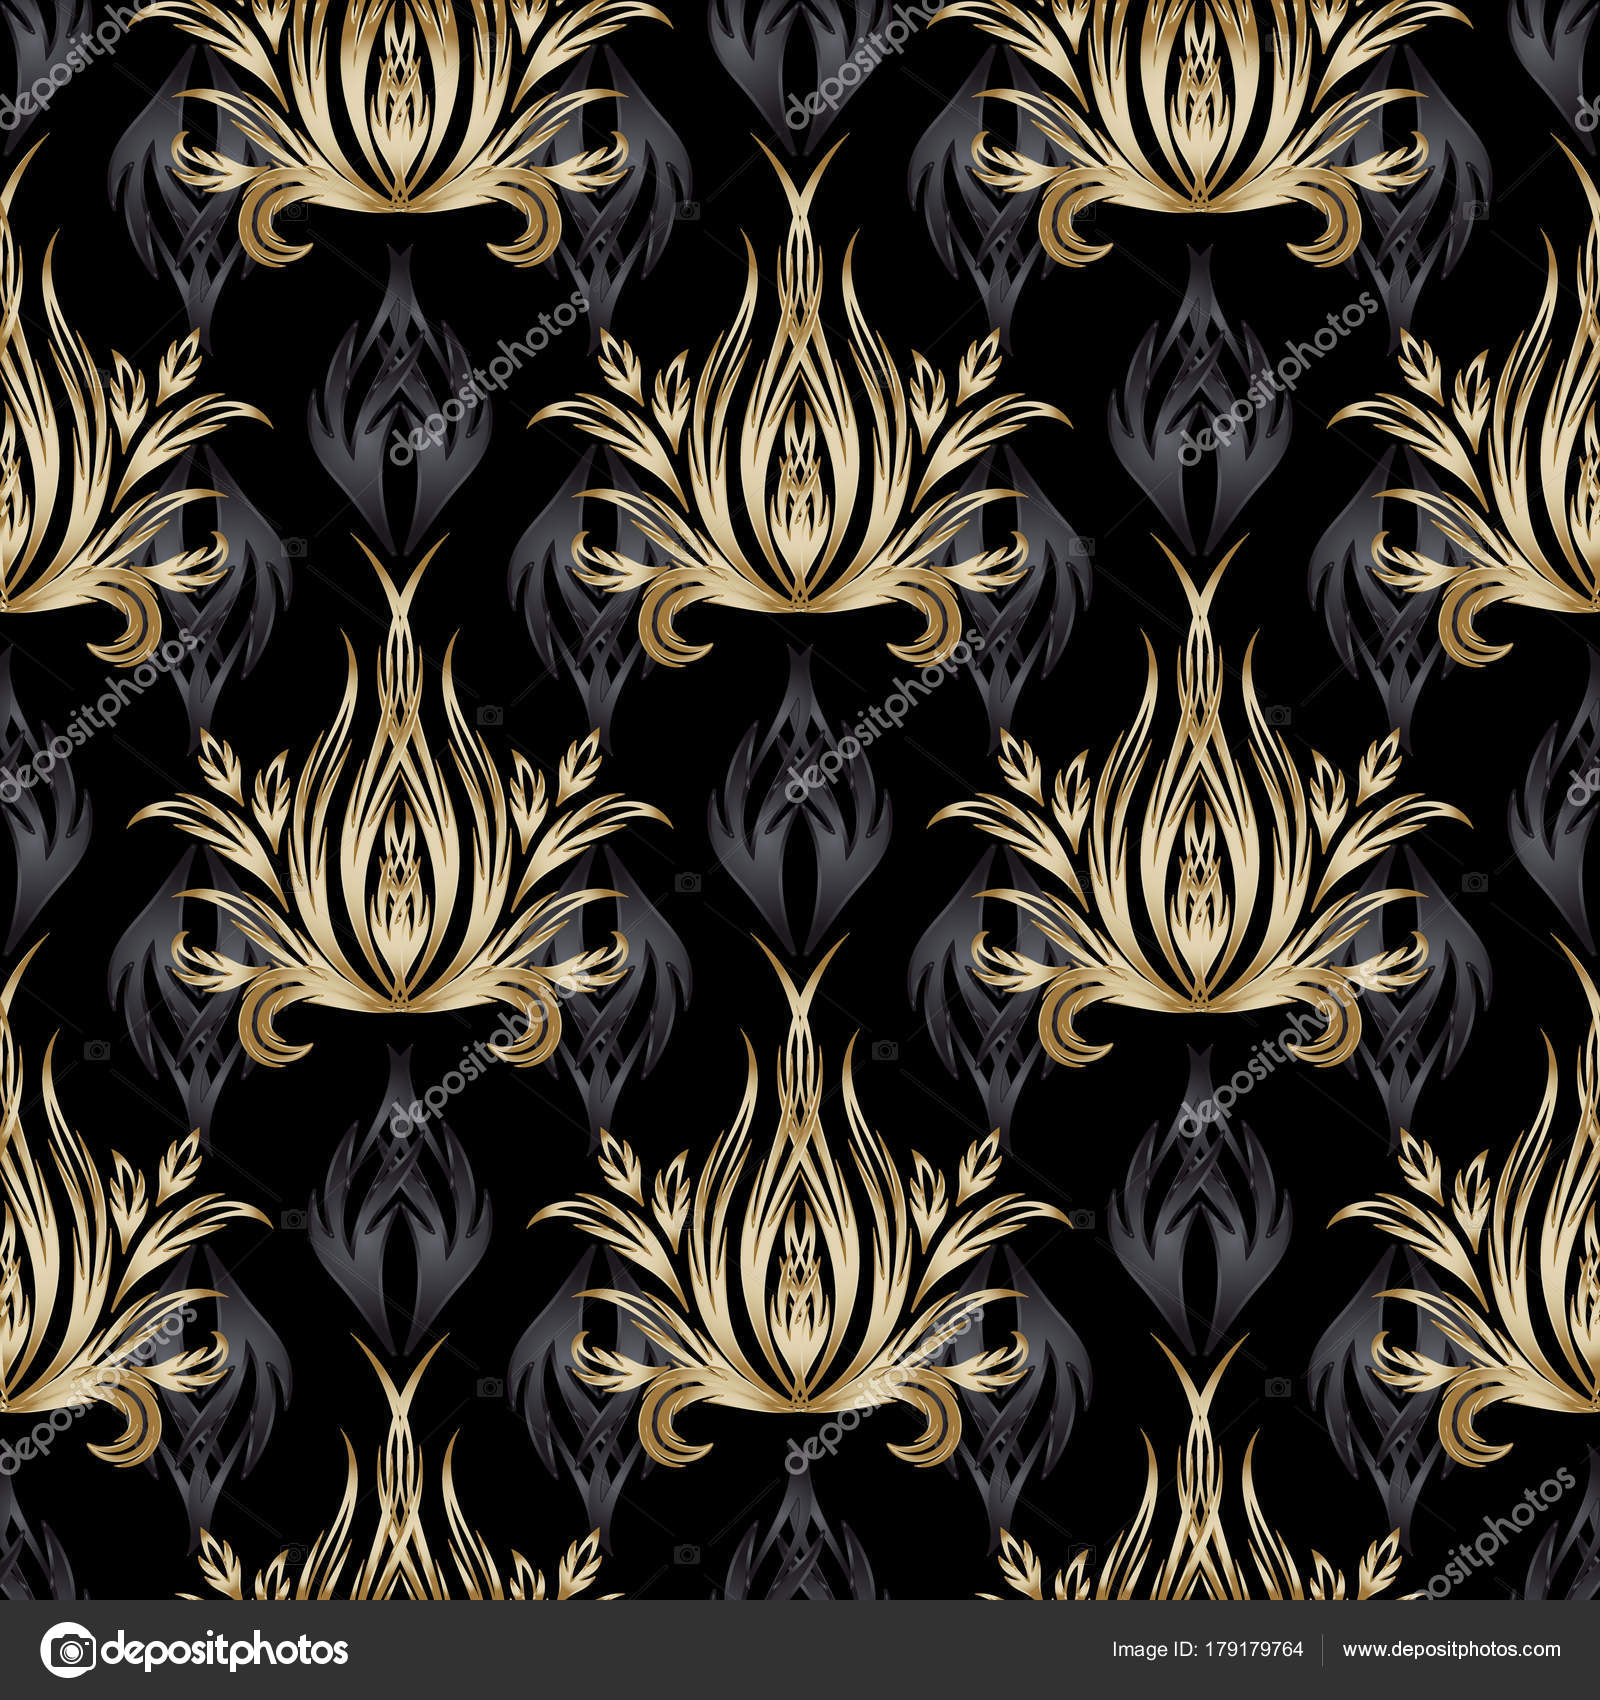 depositphotos 179179764 stock illustration damask vector seamless pattern gold - Barock Tapete Schwarz Gold